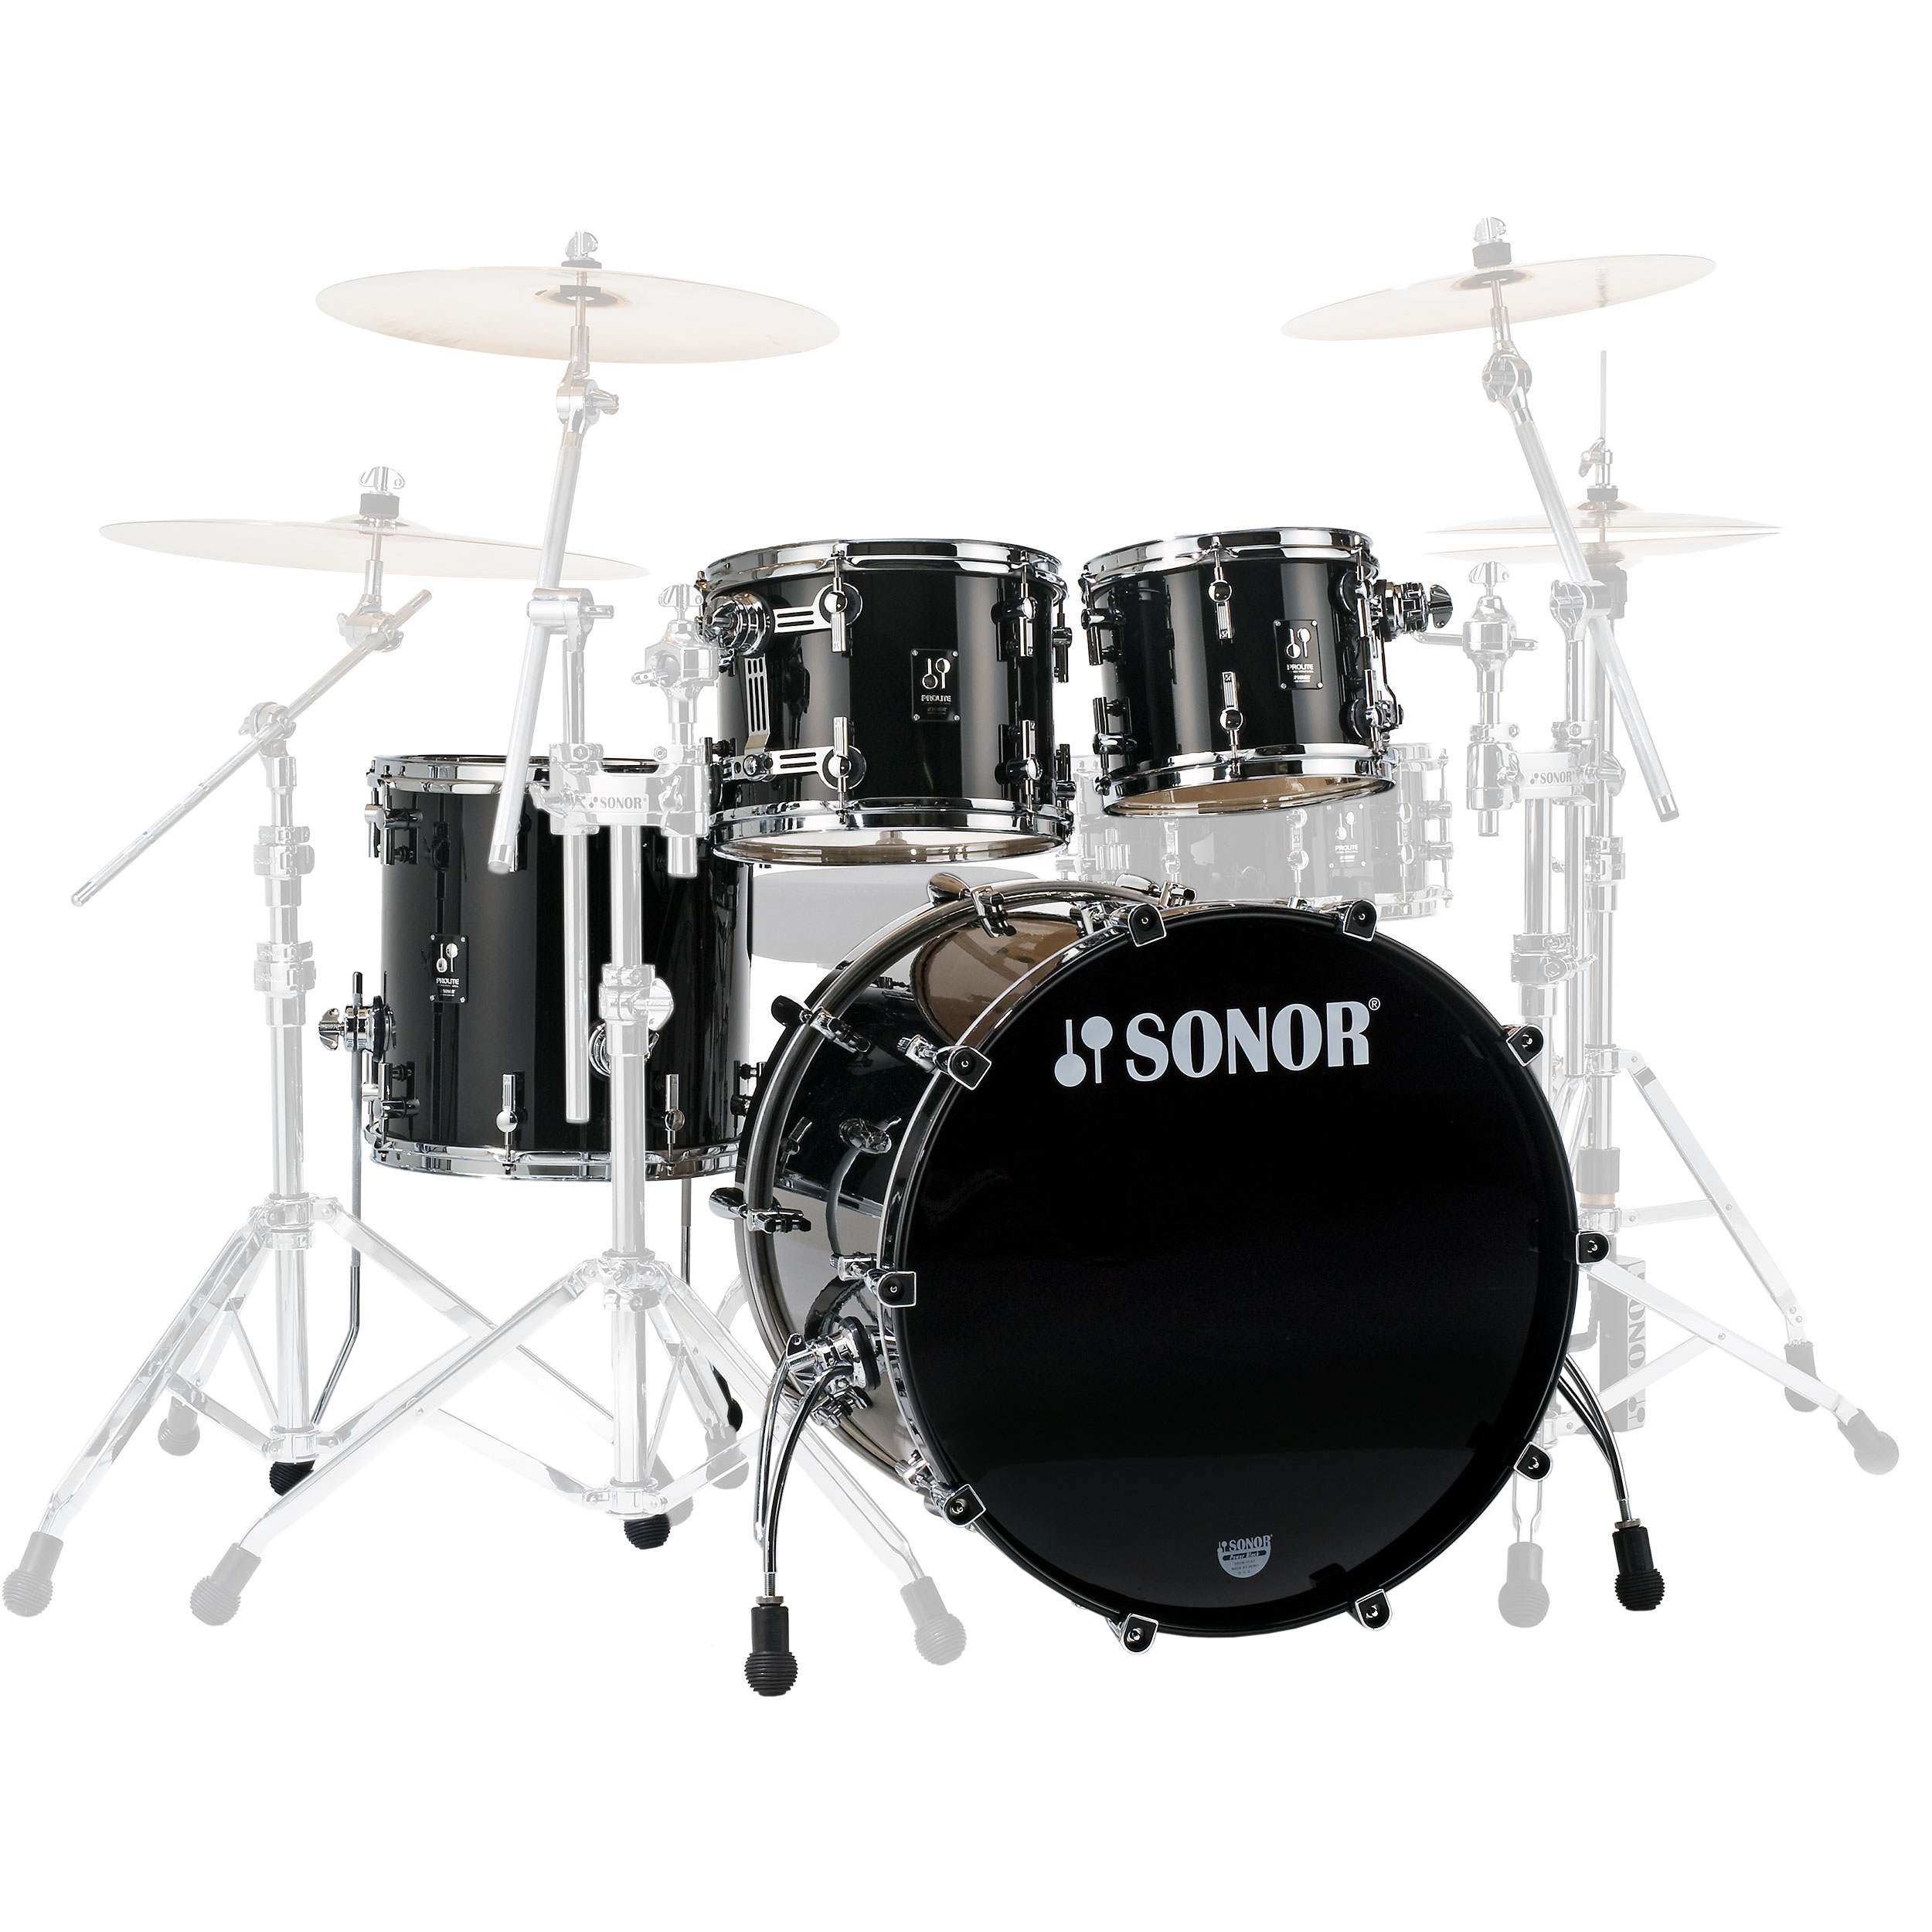 "Sonor ProLite Stage 3 4-Piece Drum Set Shell Pack (22"" Bass, 10/12/16"" Toms)"